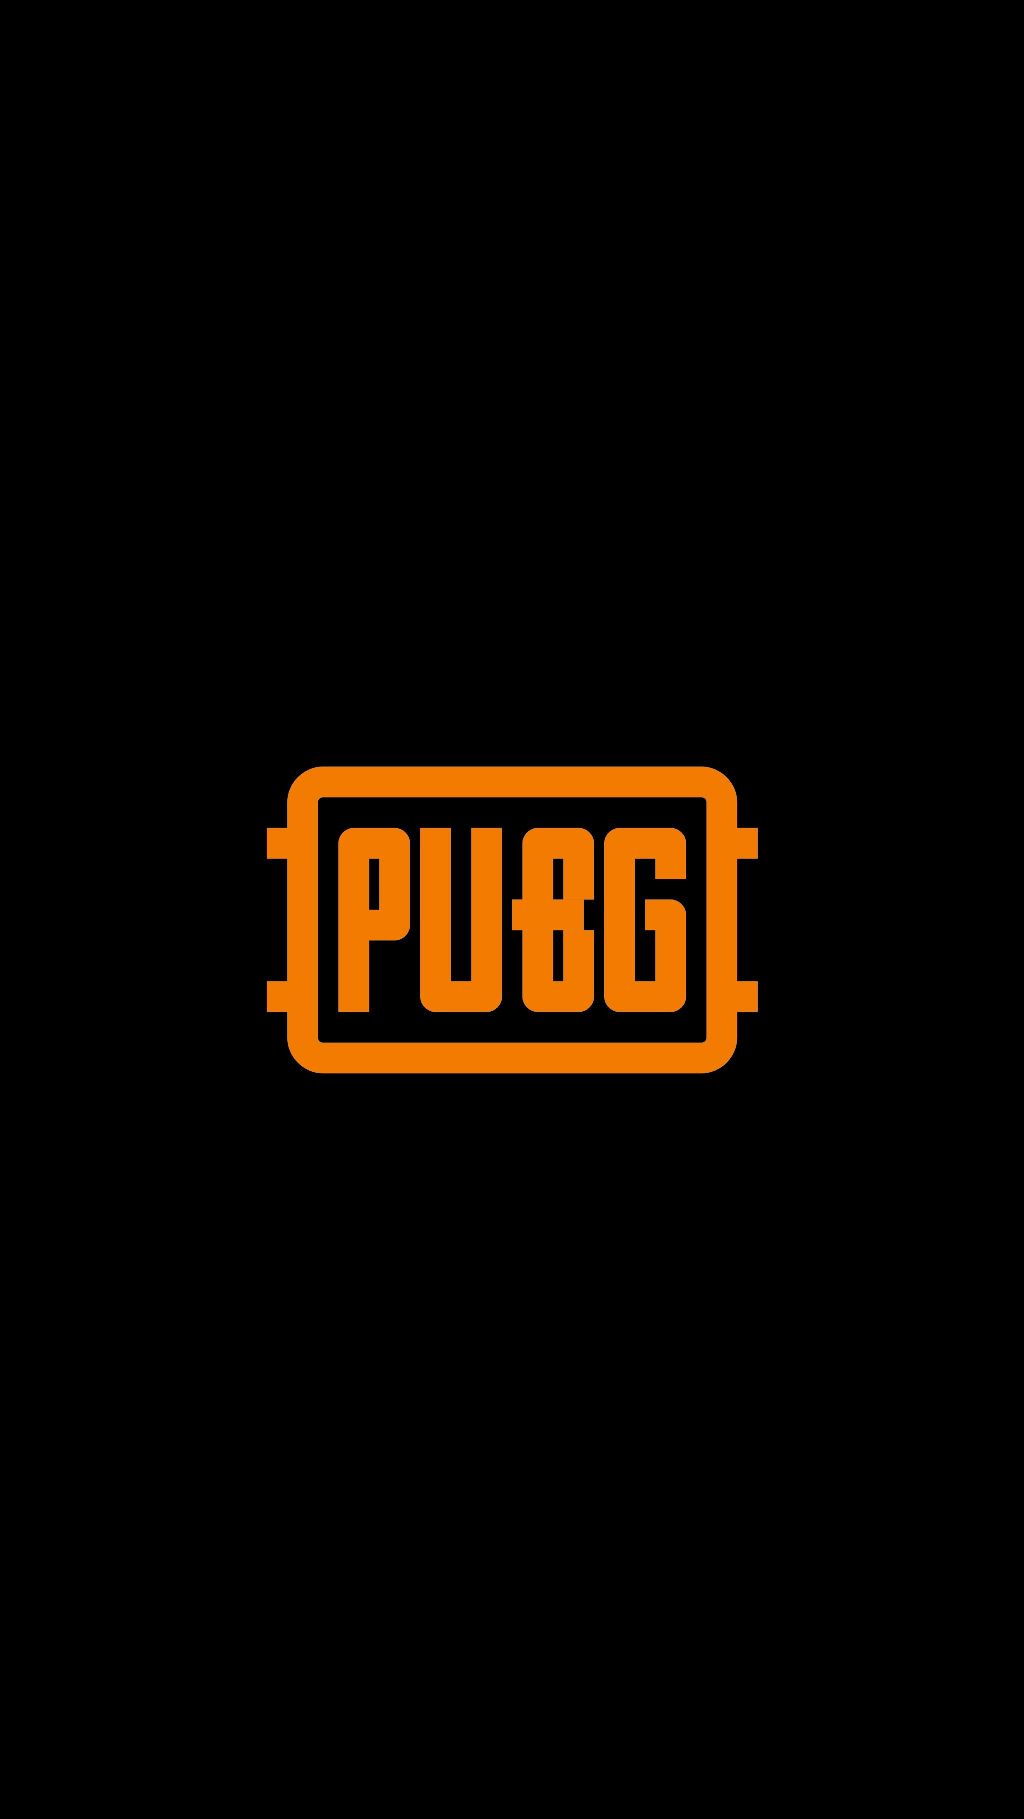 190 wallpaper pubg mobile hd terbaru dan terlengkap 190 wallpaper pubg mobile hd terbaru